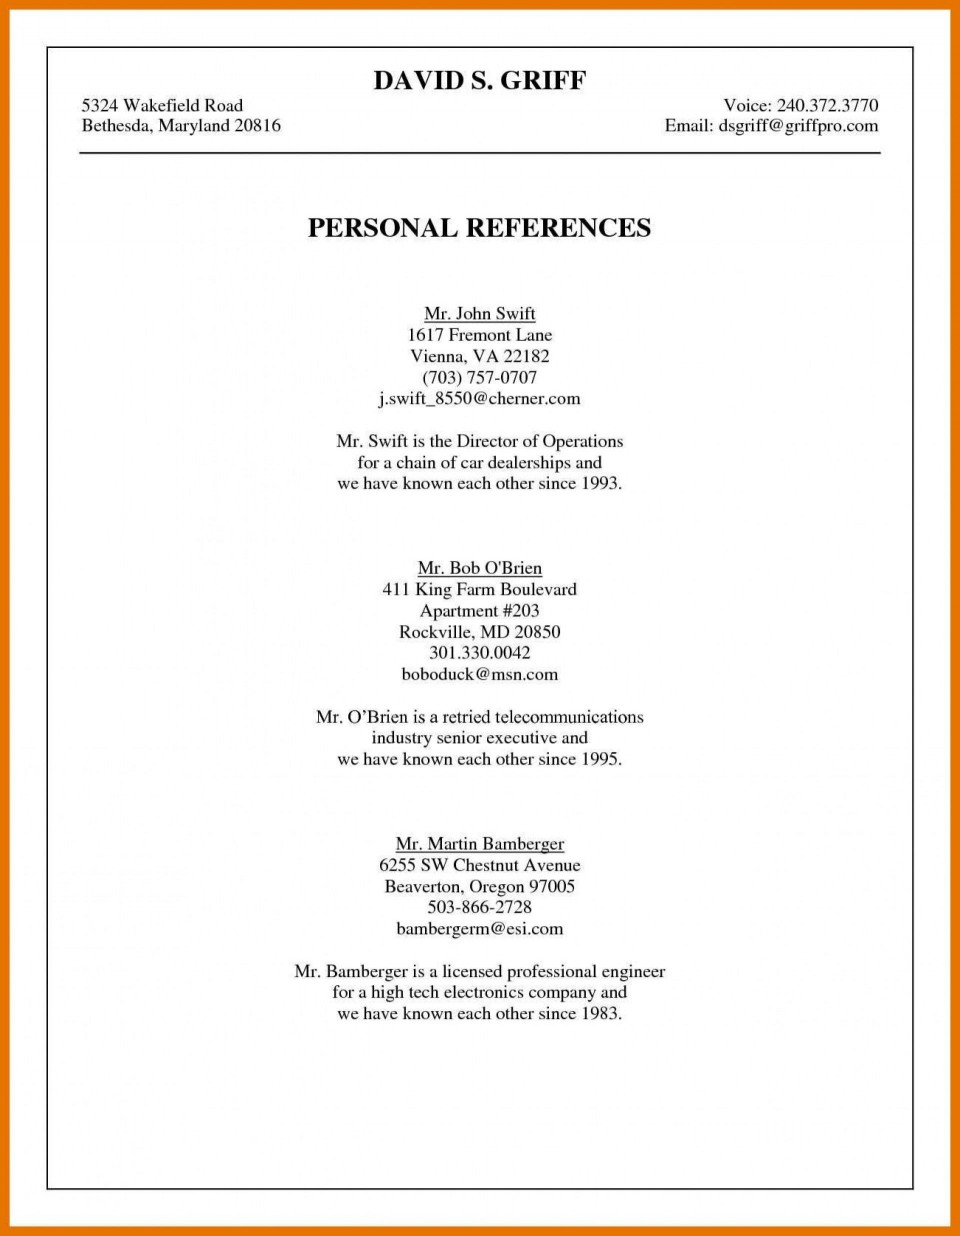 001 Awesome List Of Professional Reference Template Image  Sample Job Format960